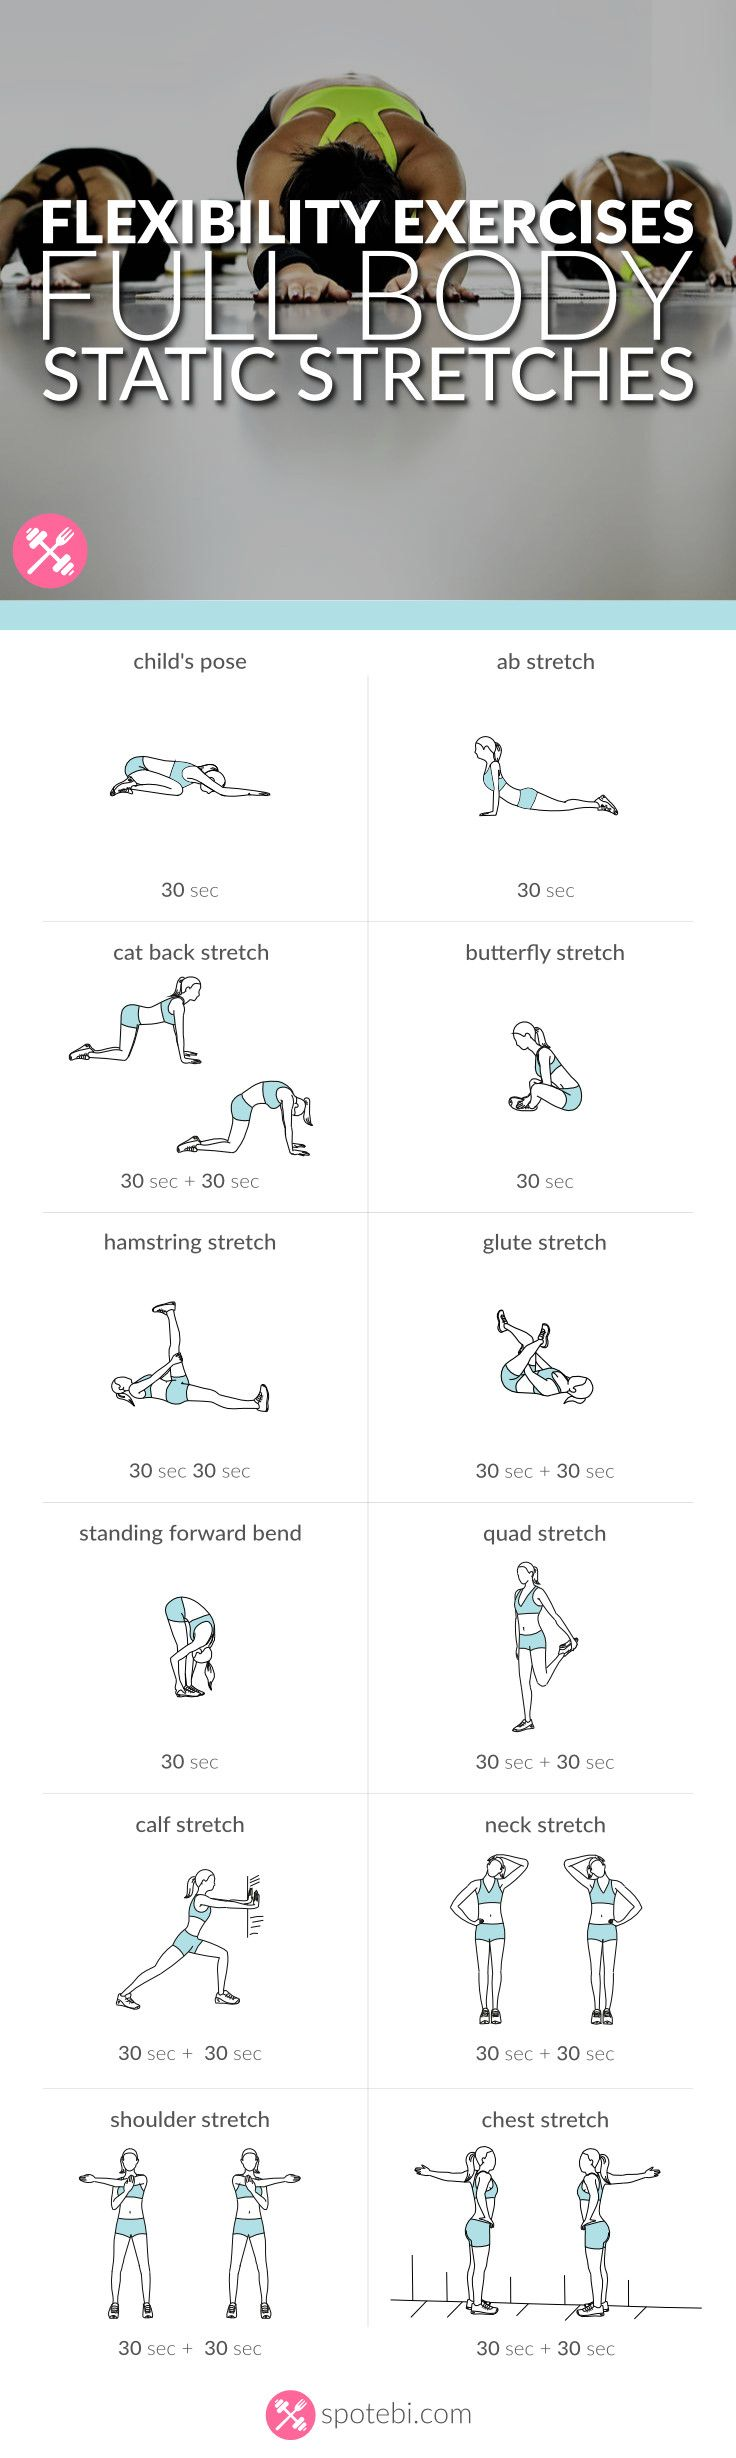 Now that I'm upping my exercise routines to everyday and far more intense I need to start doing these stretches more